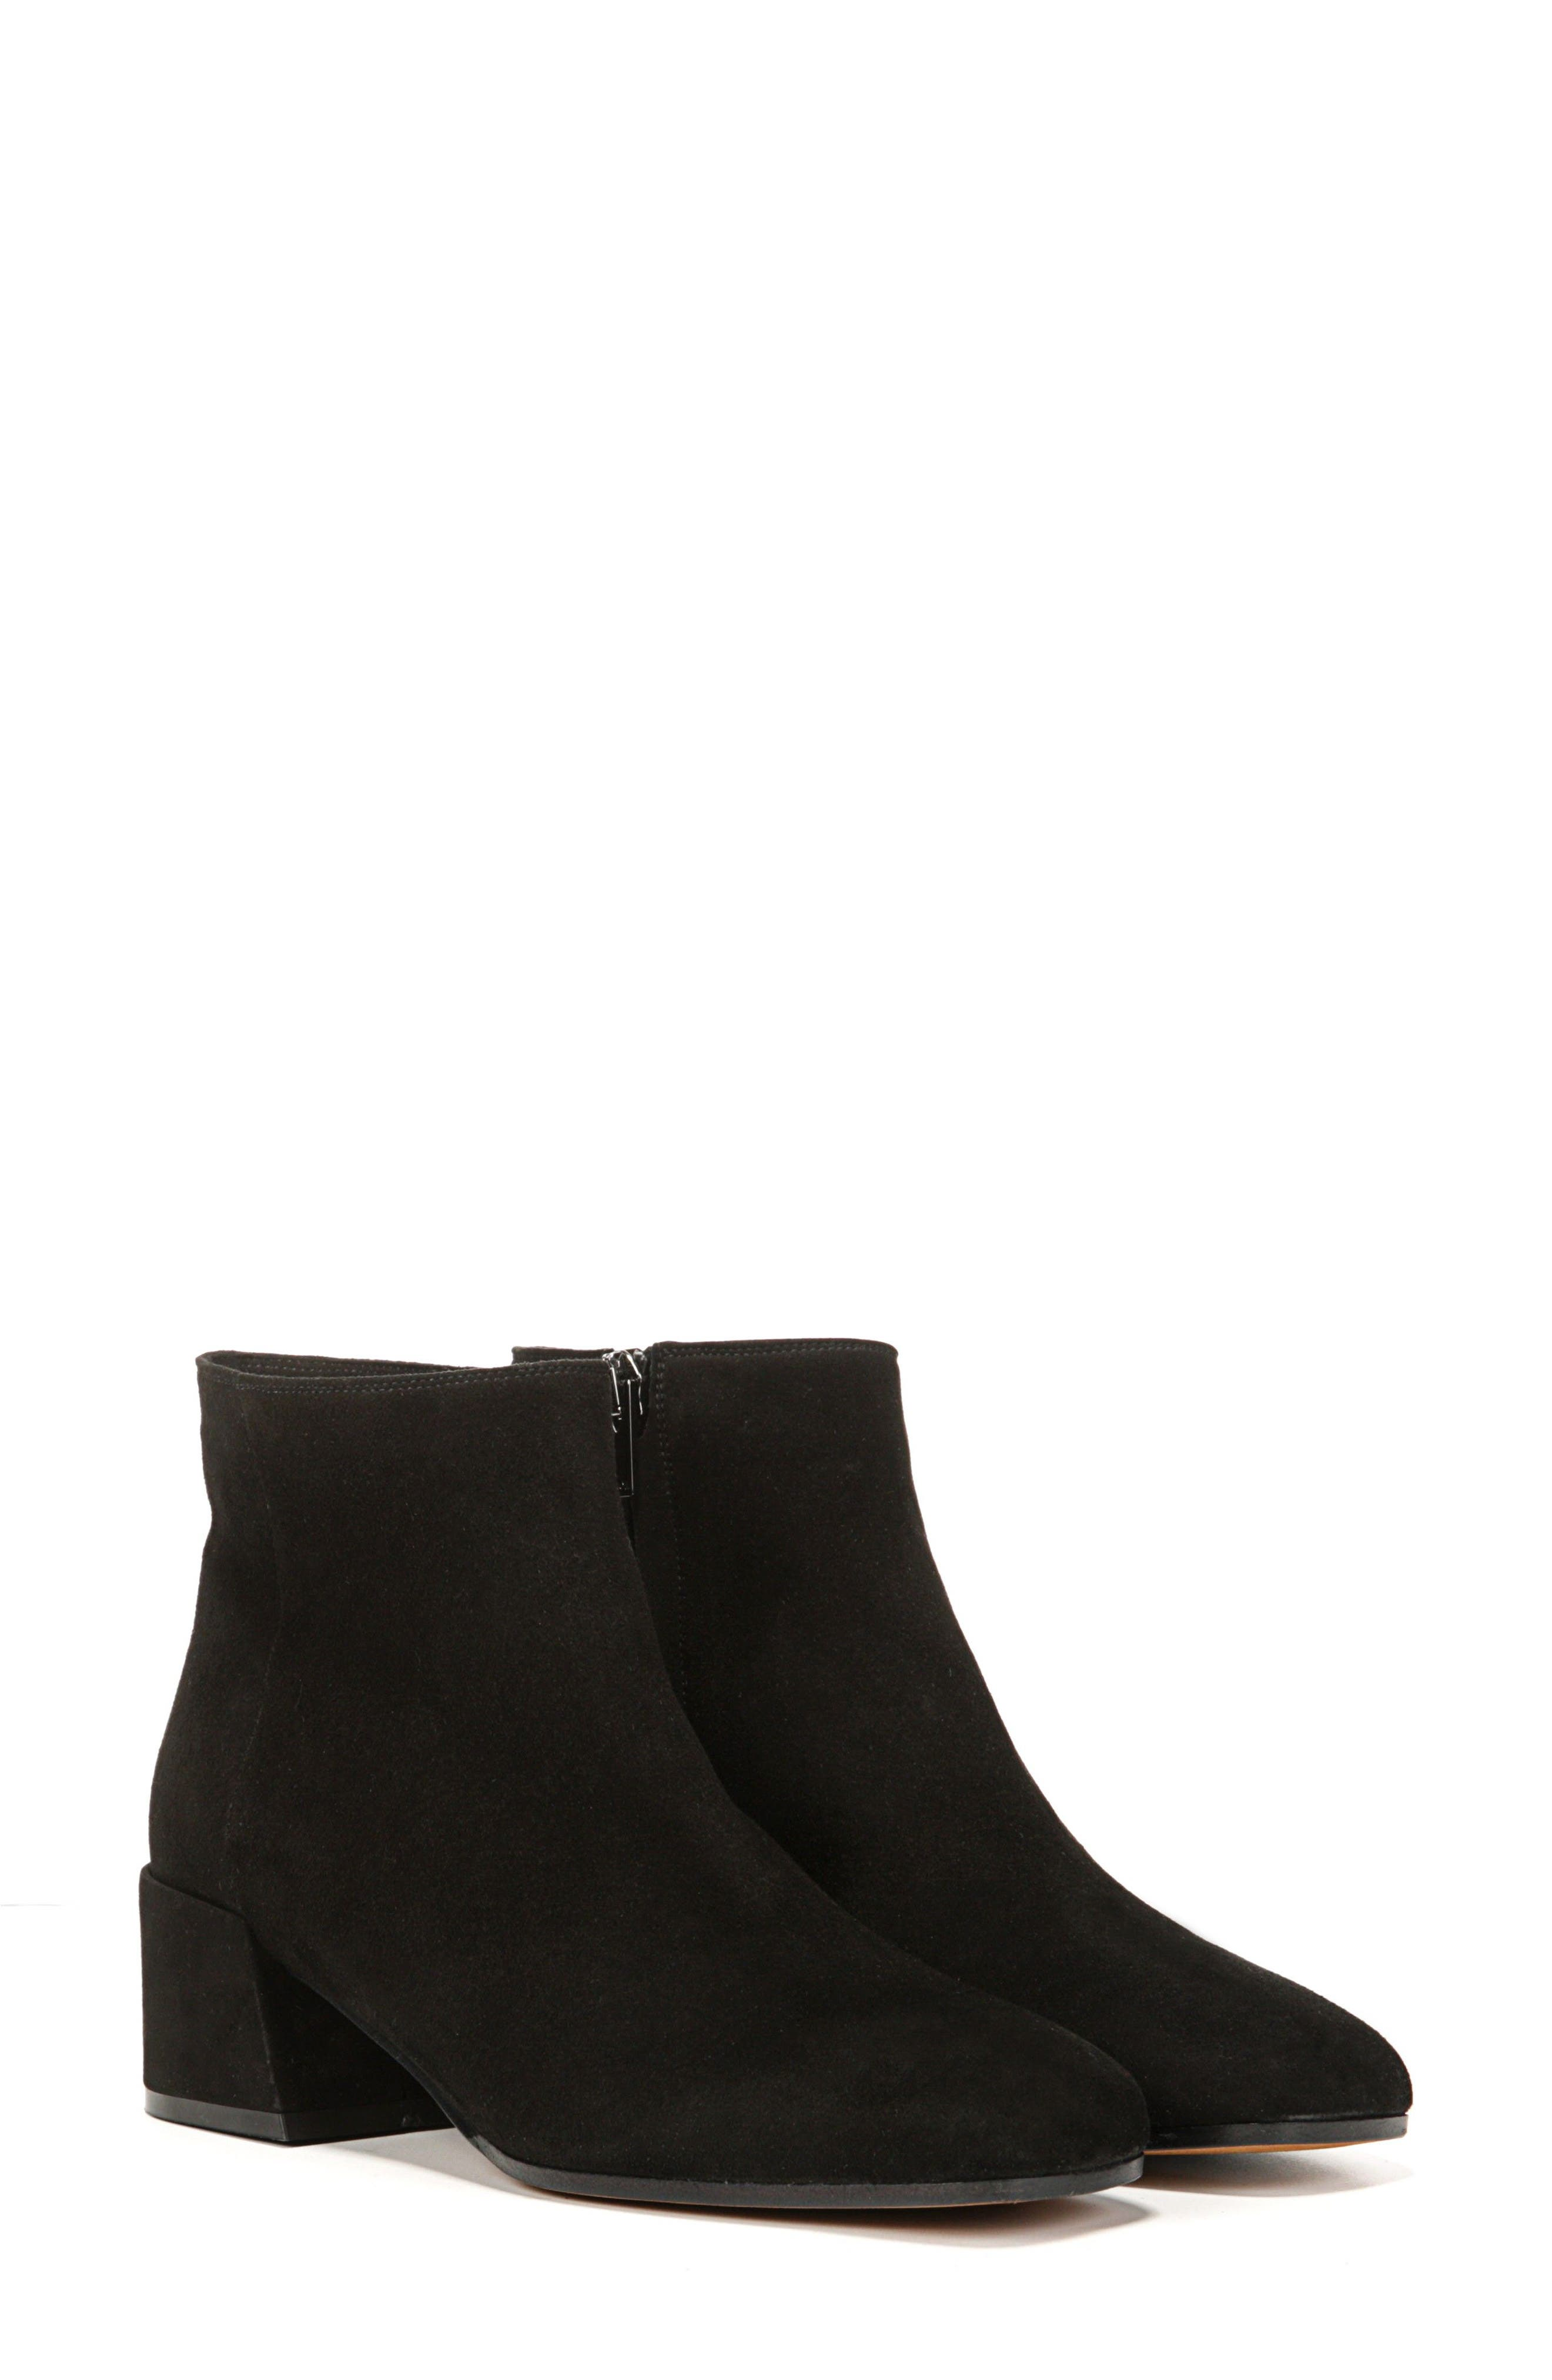 Ostend Bootie,                             Alternate thumbnail 21, color,